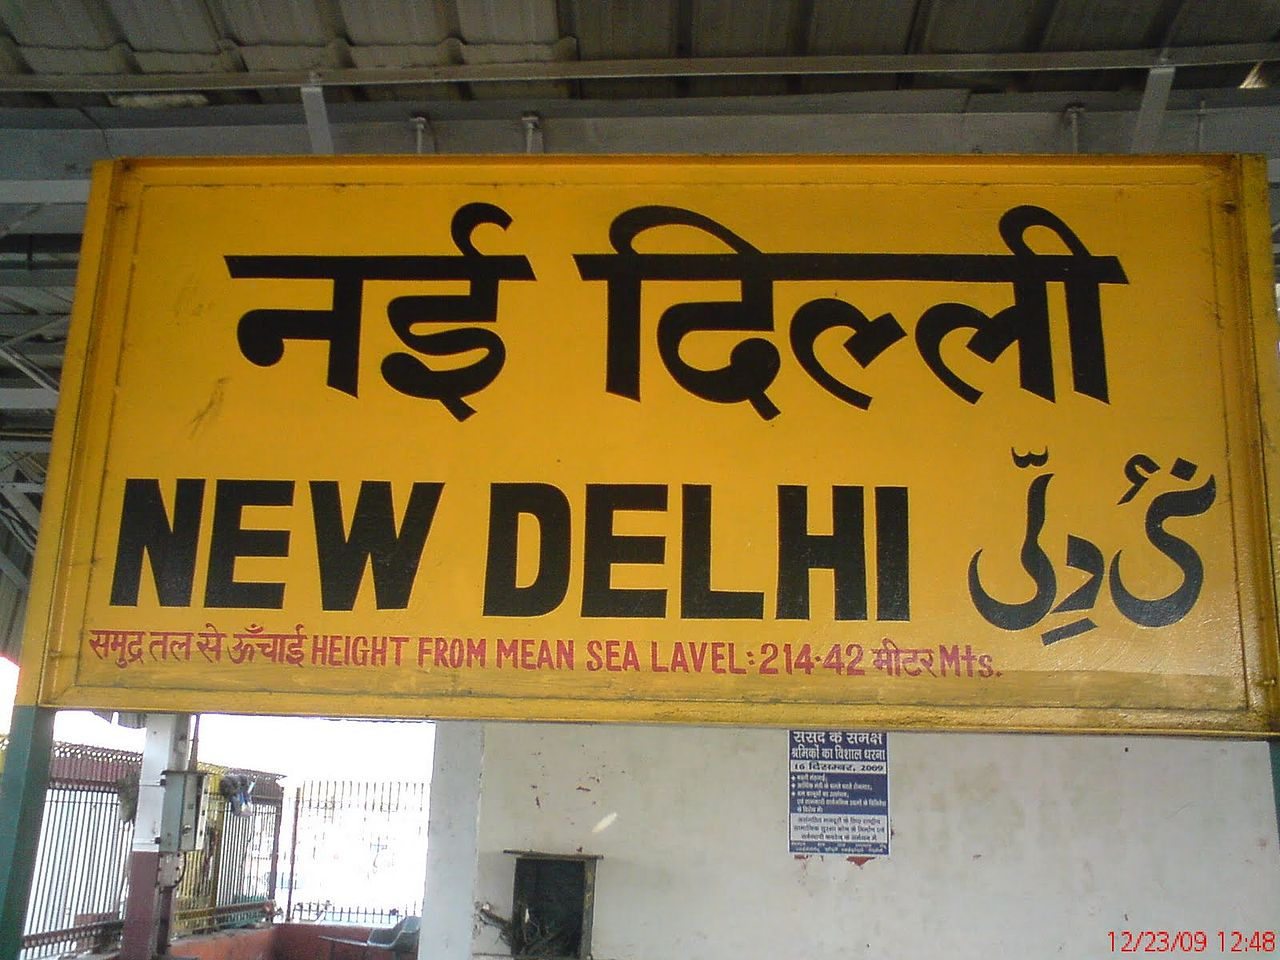 New Delhi Railway Station http://commons.wikimedia.org/wiki/File:New_Delhi_railway_station_board.jpg